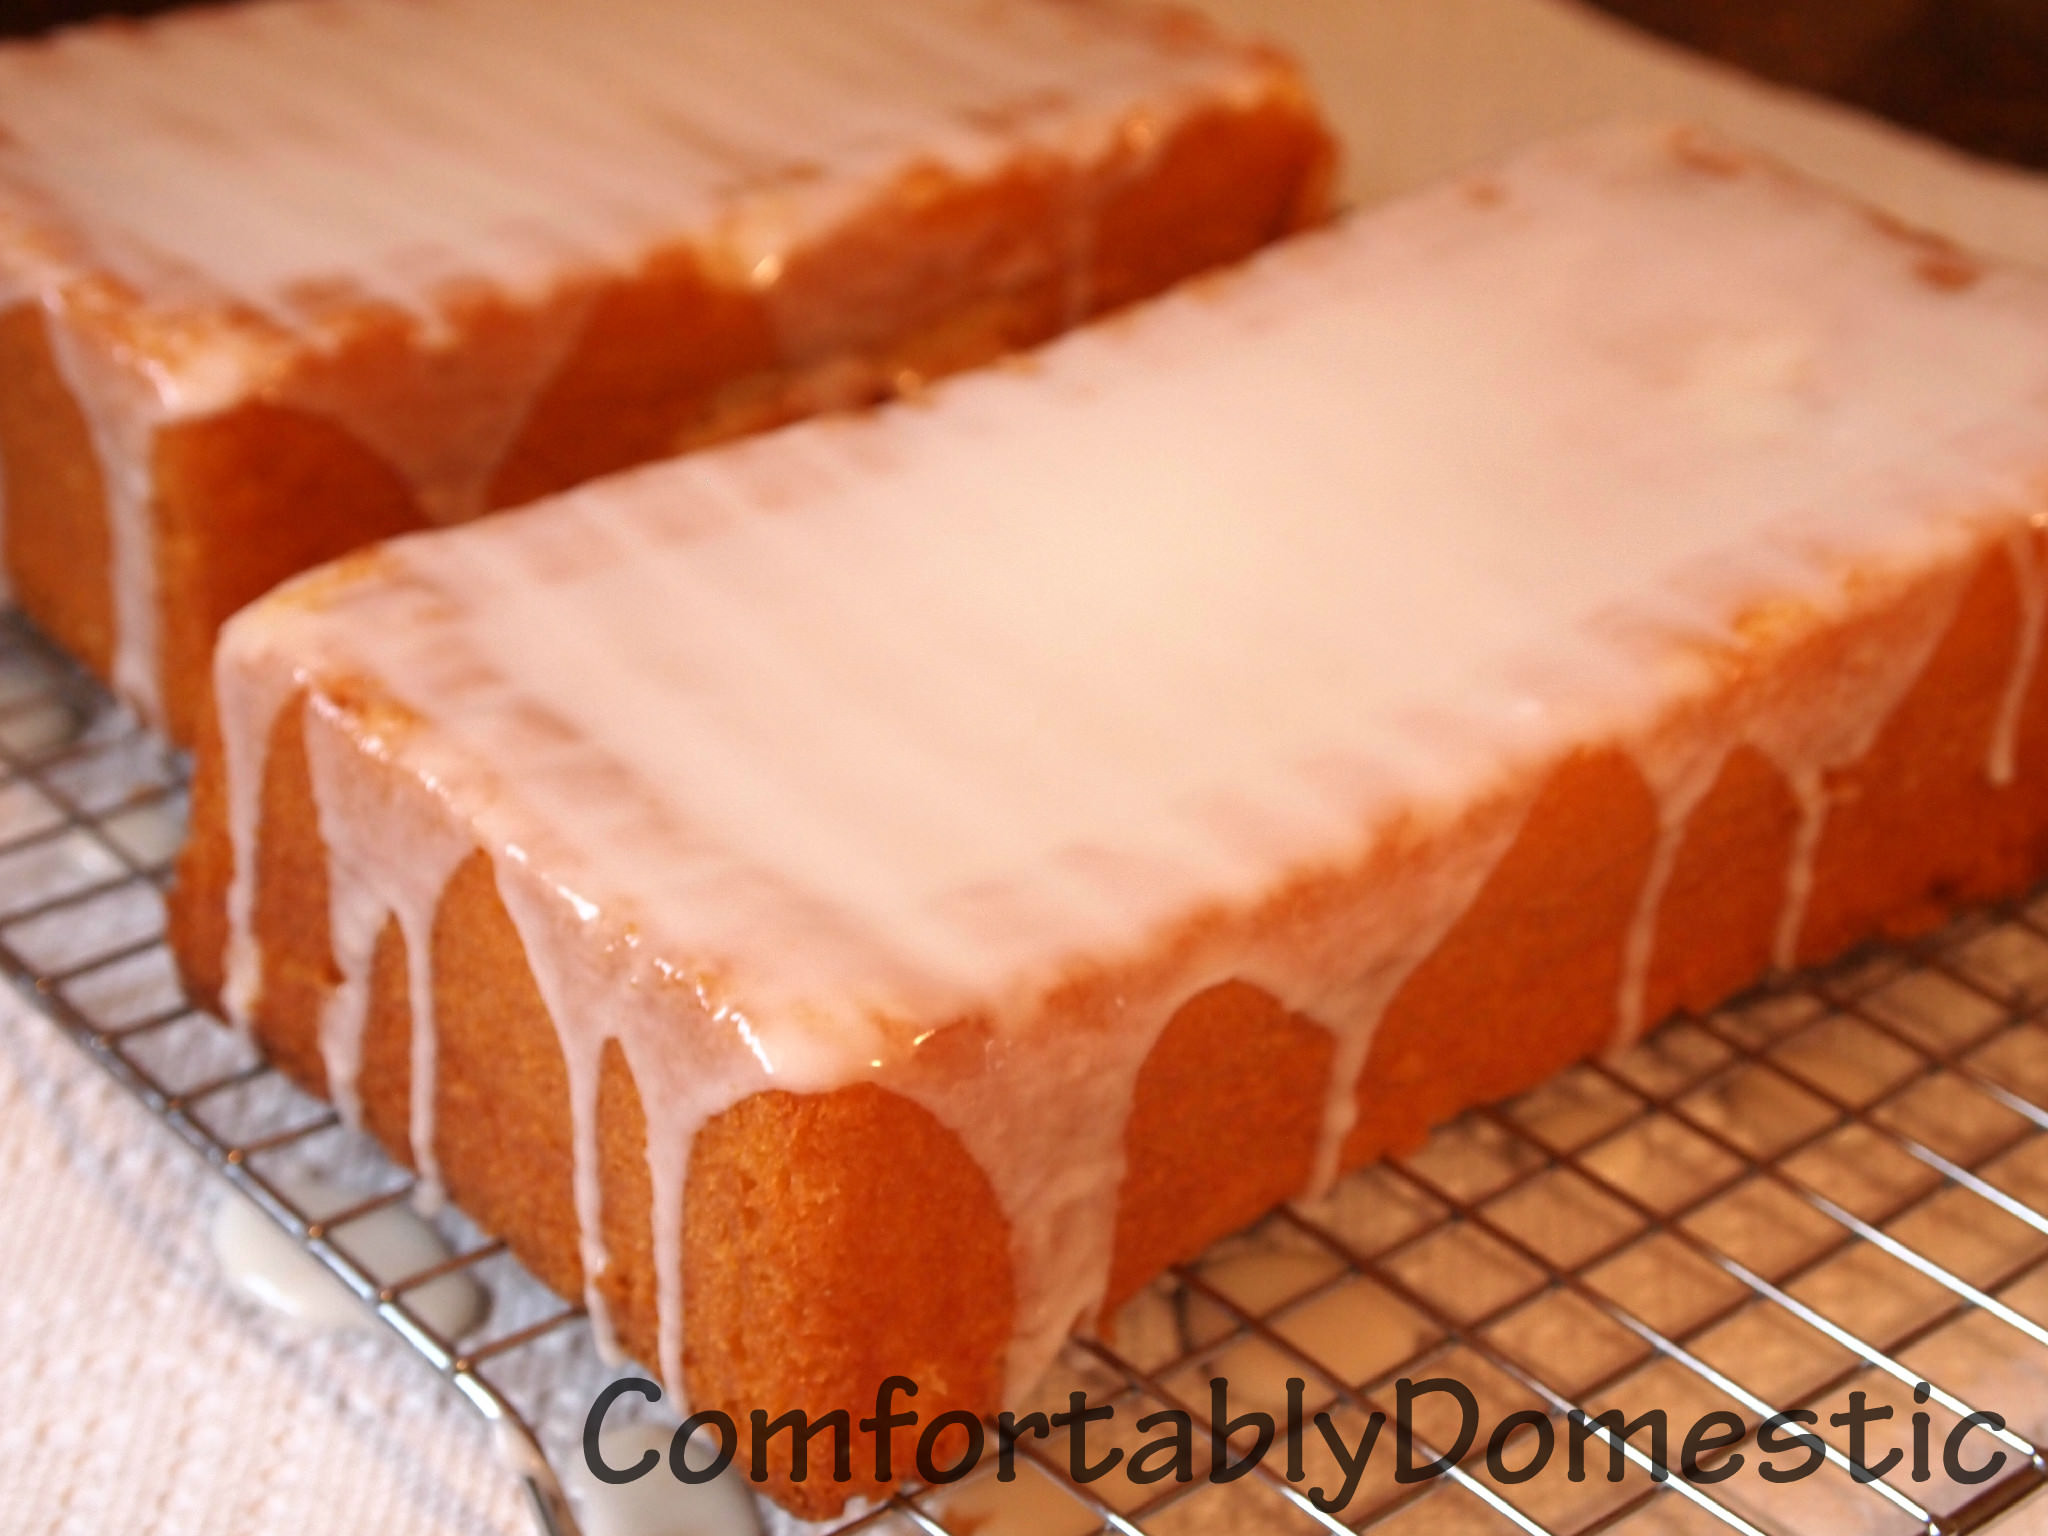 Iced lemon loaf is the perfect treat with a cup of coffee. Now there's no need to get it at the local coffee shop, because you can make it at home for a fraction of the cost!